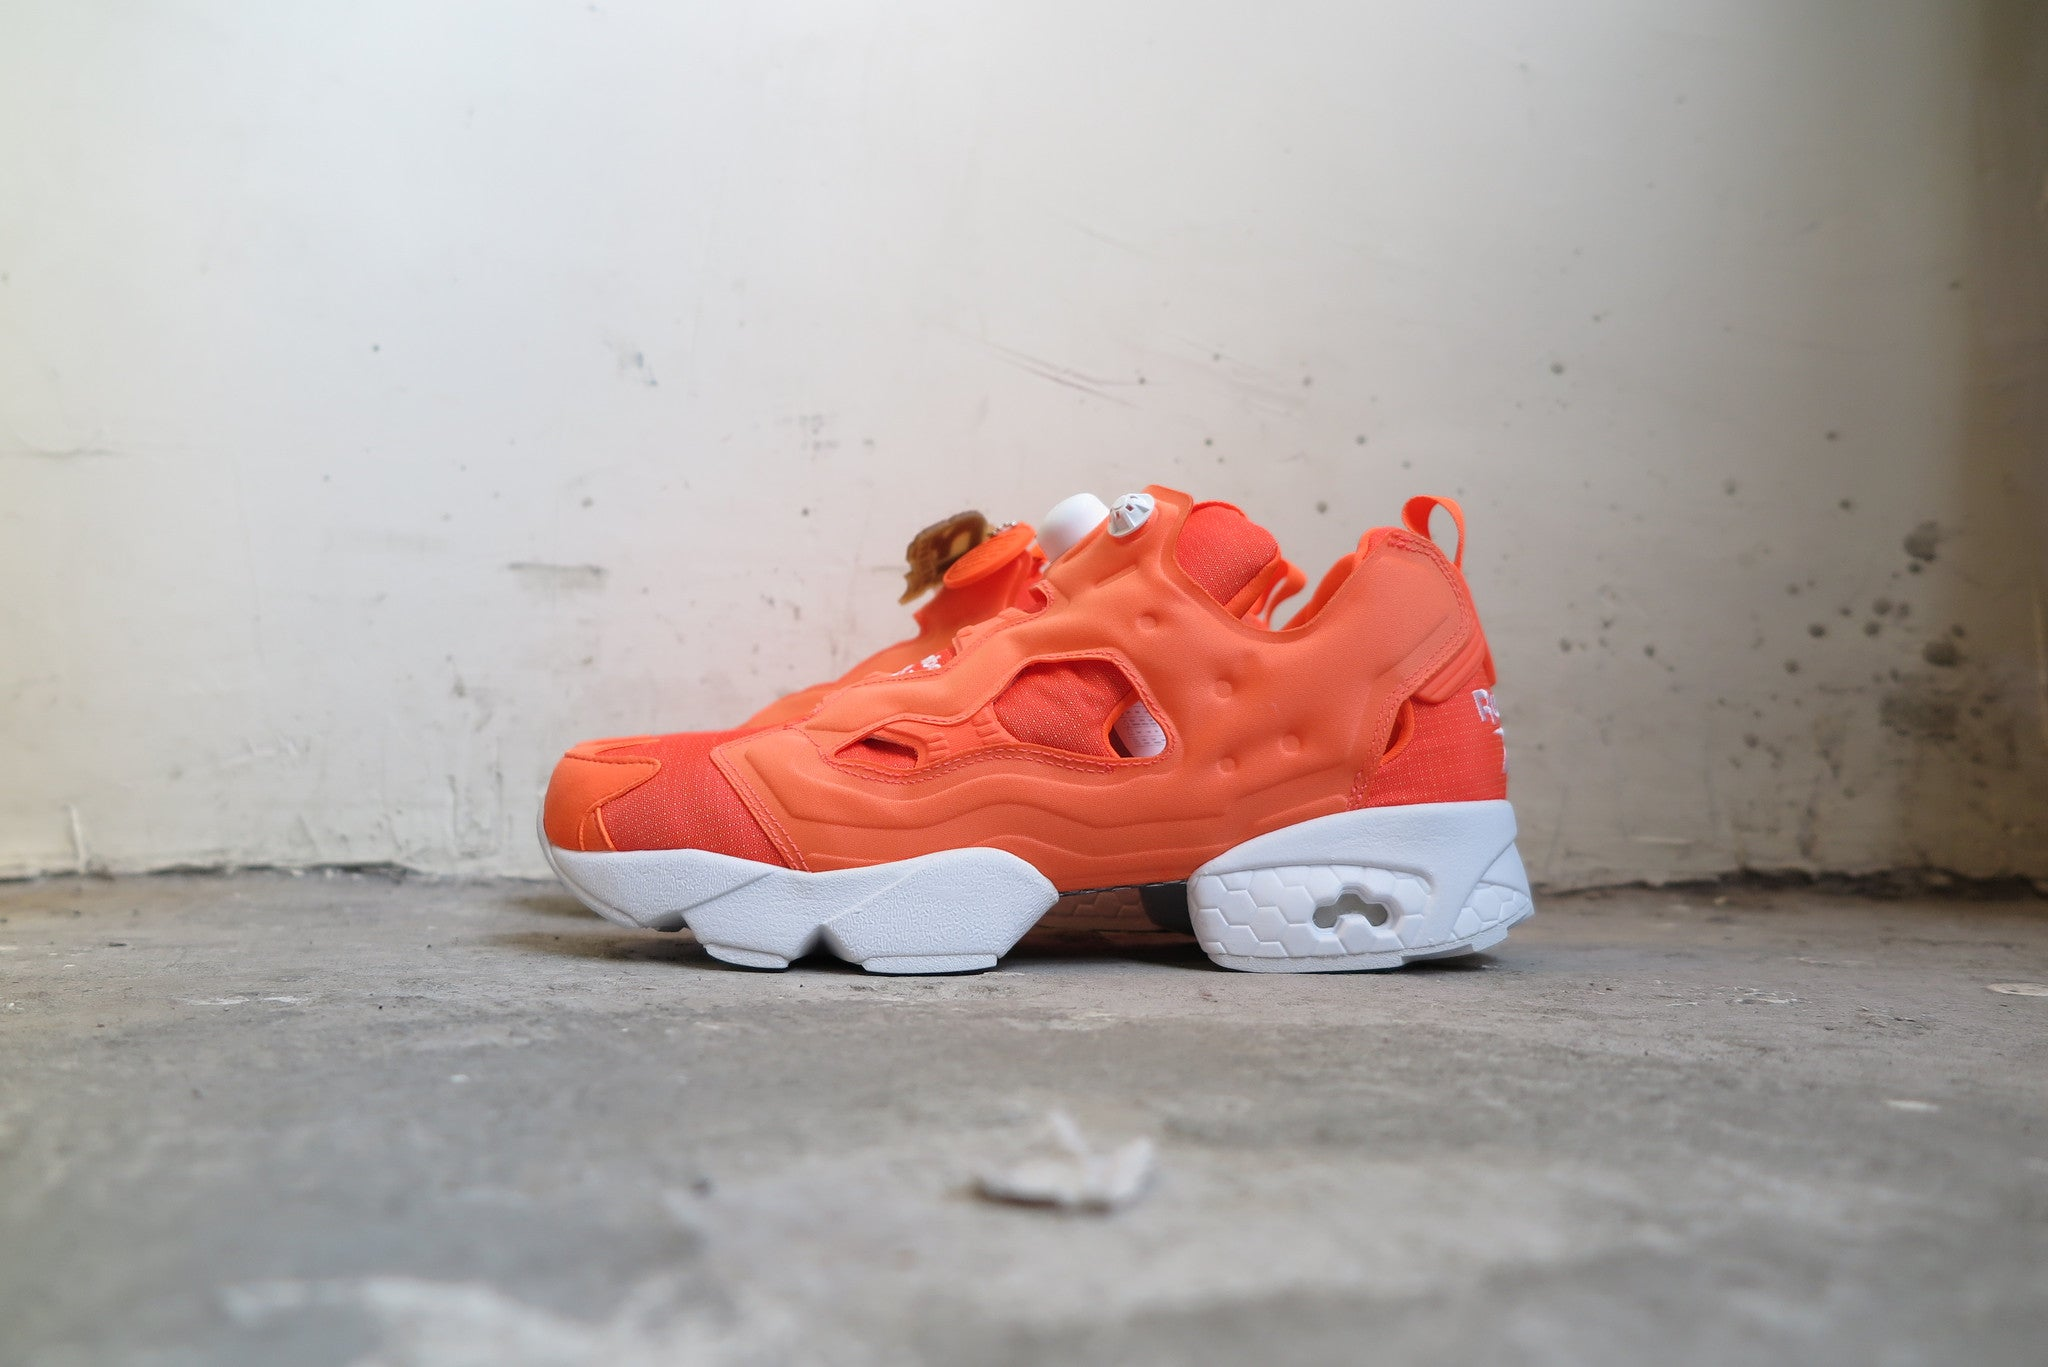 79556a72fe1f Reebok Instapump Fury Tech - Solar Orange  M46319-Sneakers-Navy Selected  Shop